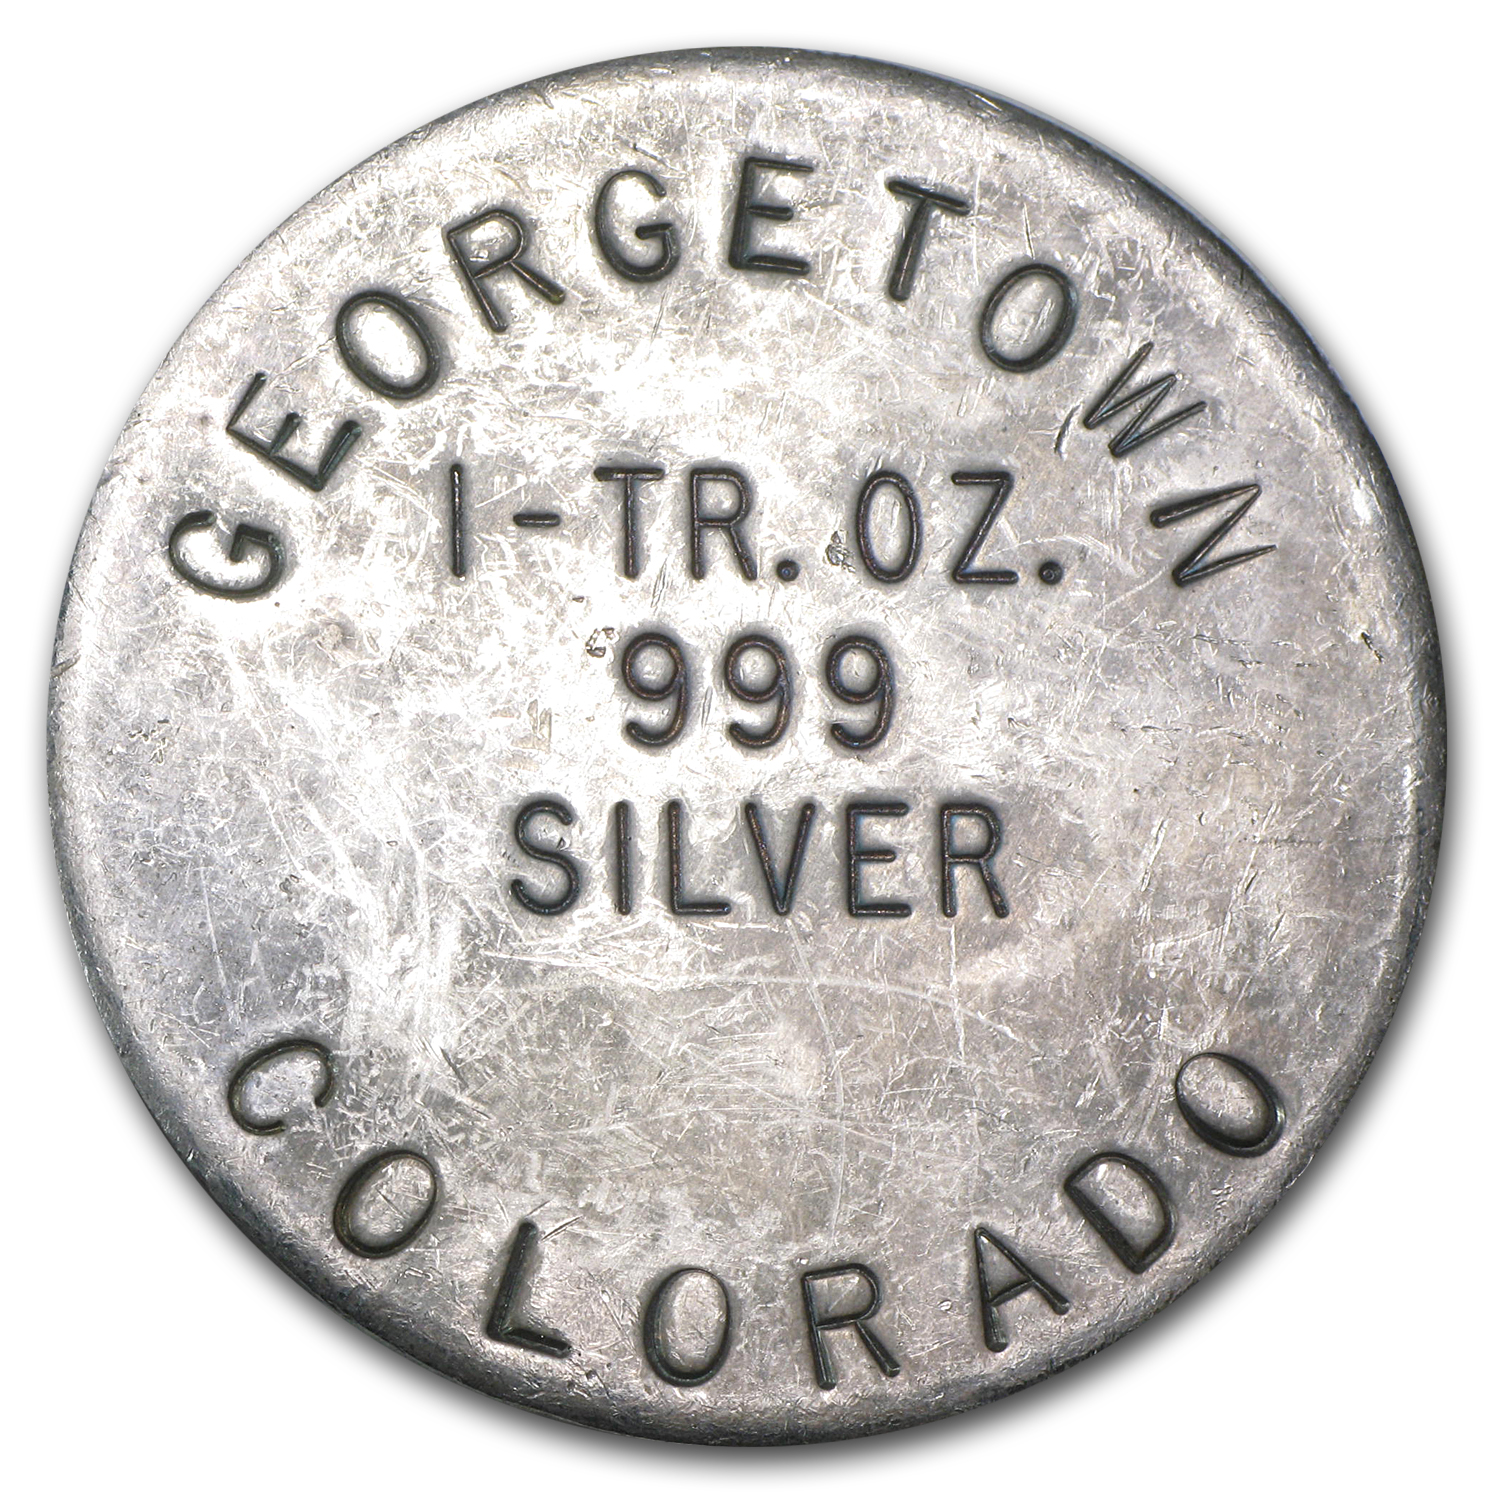 1 oz Silver Round - Georgetown, Colorado (45 mm)